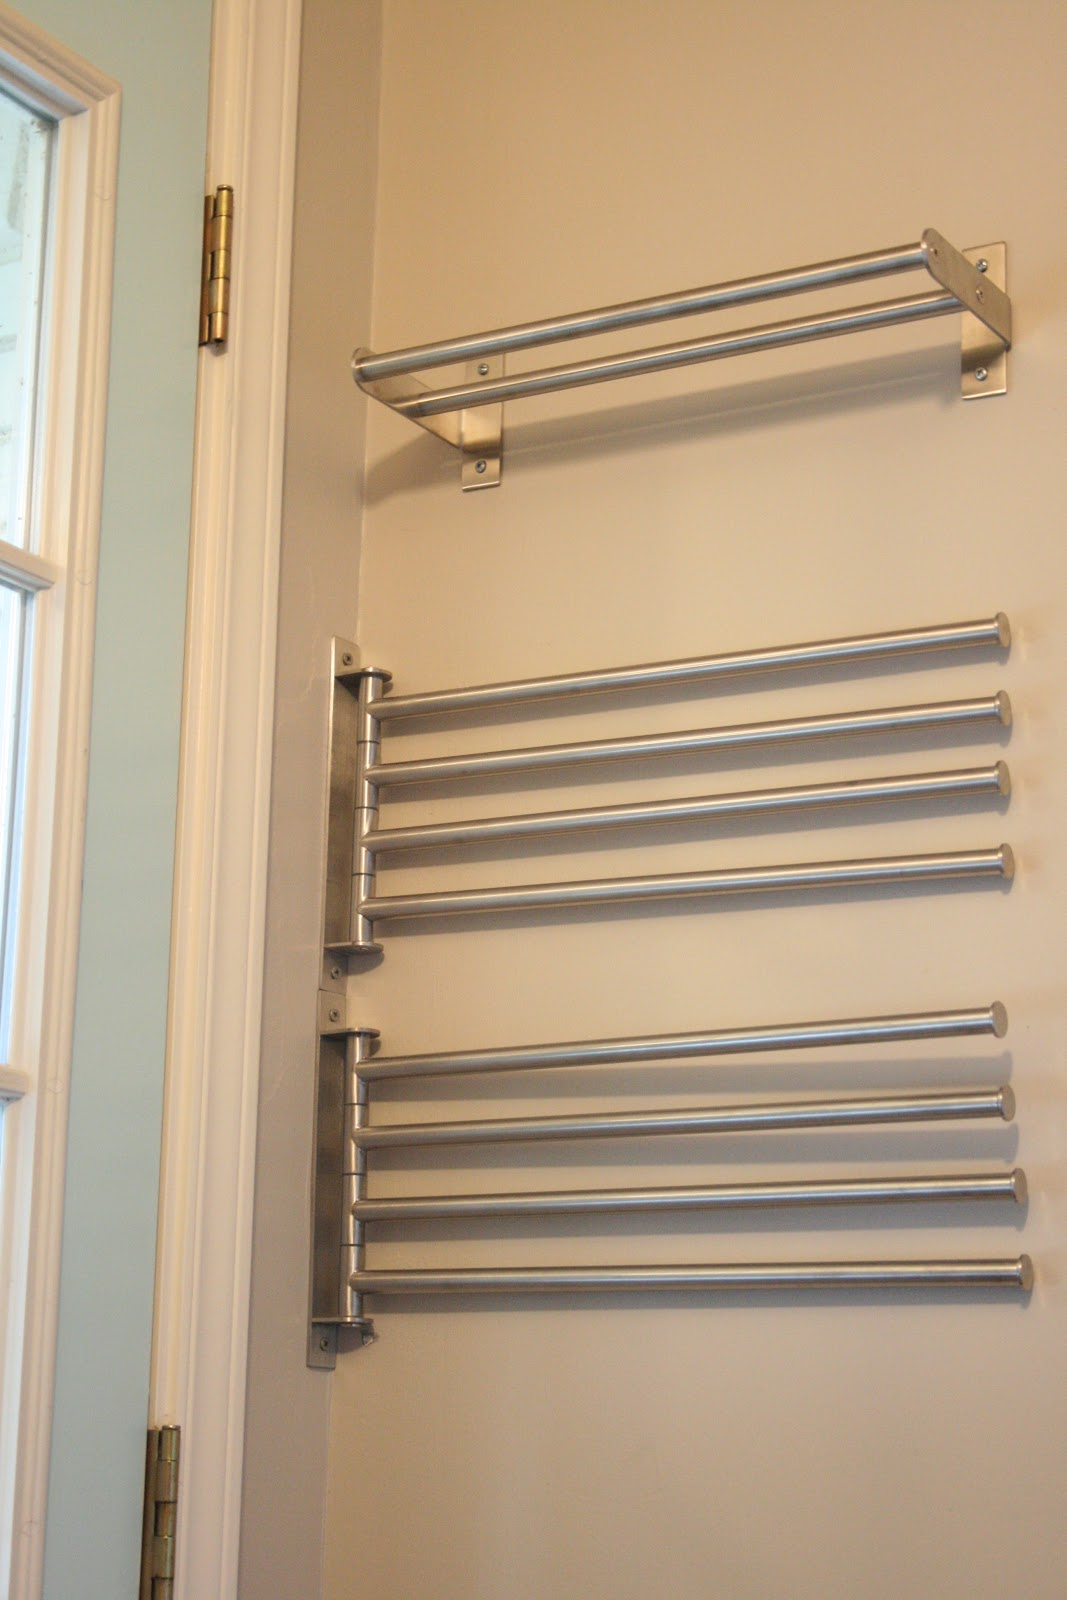 Towel racks from Ikea save space and can be hung behind doors and fanned out so towels dry fast.